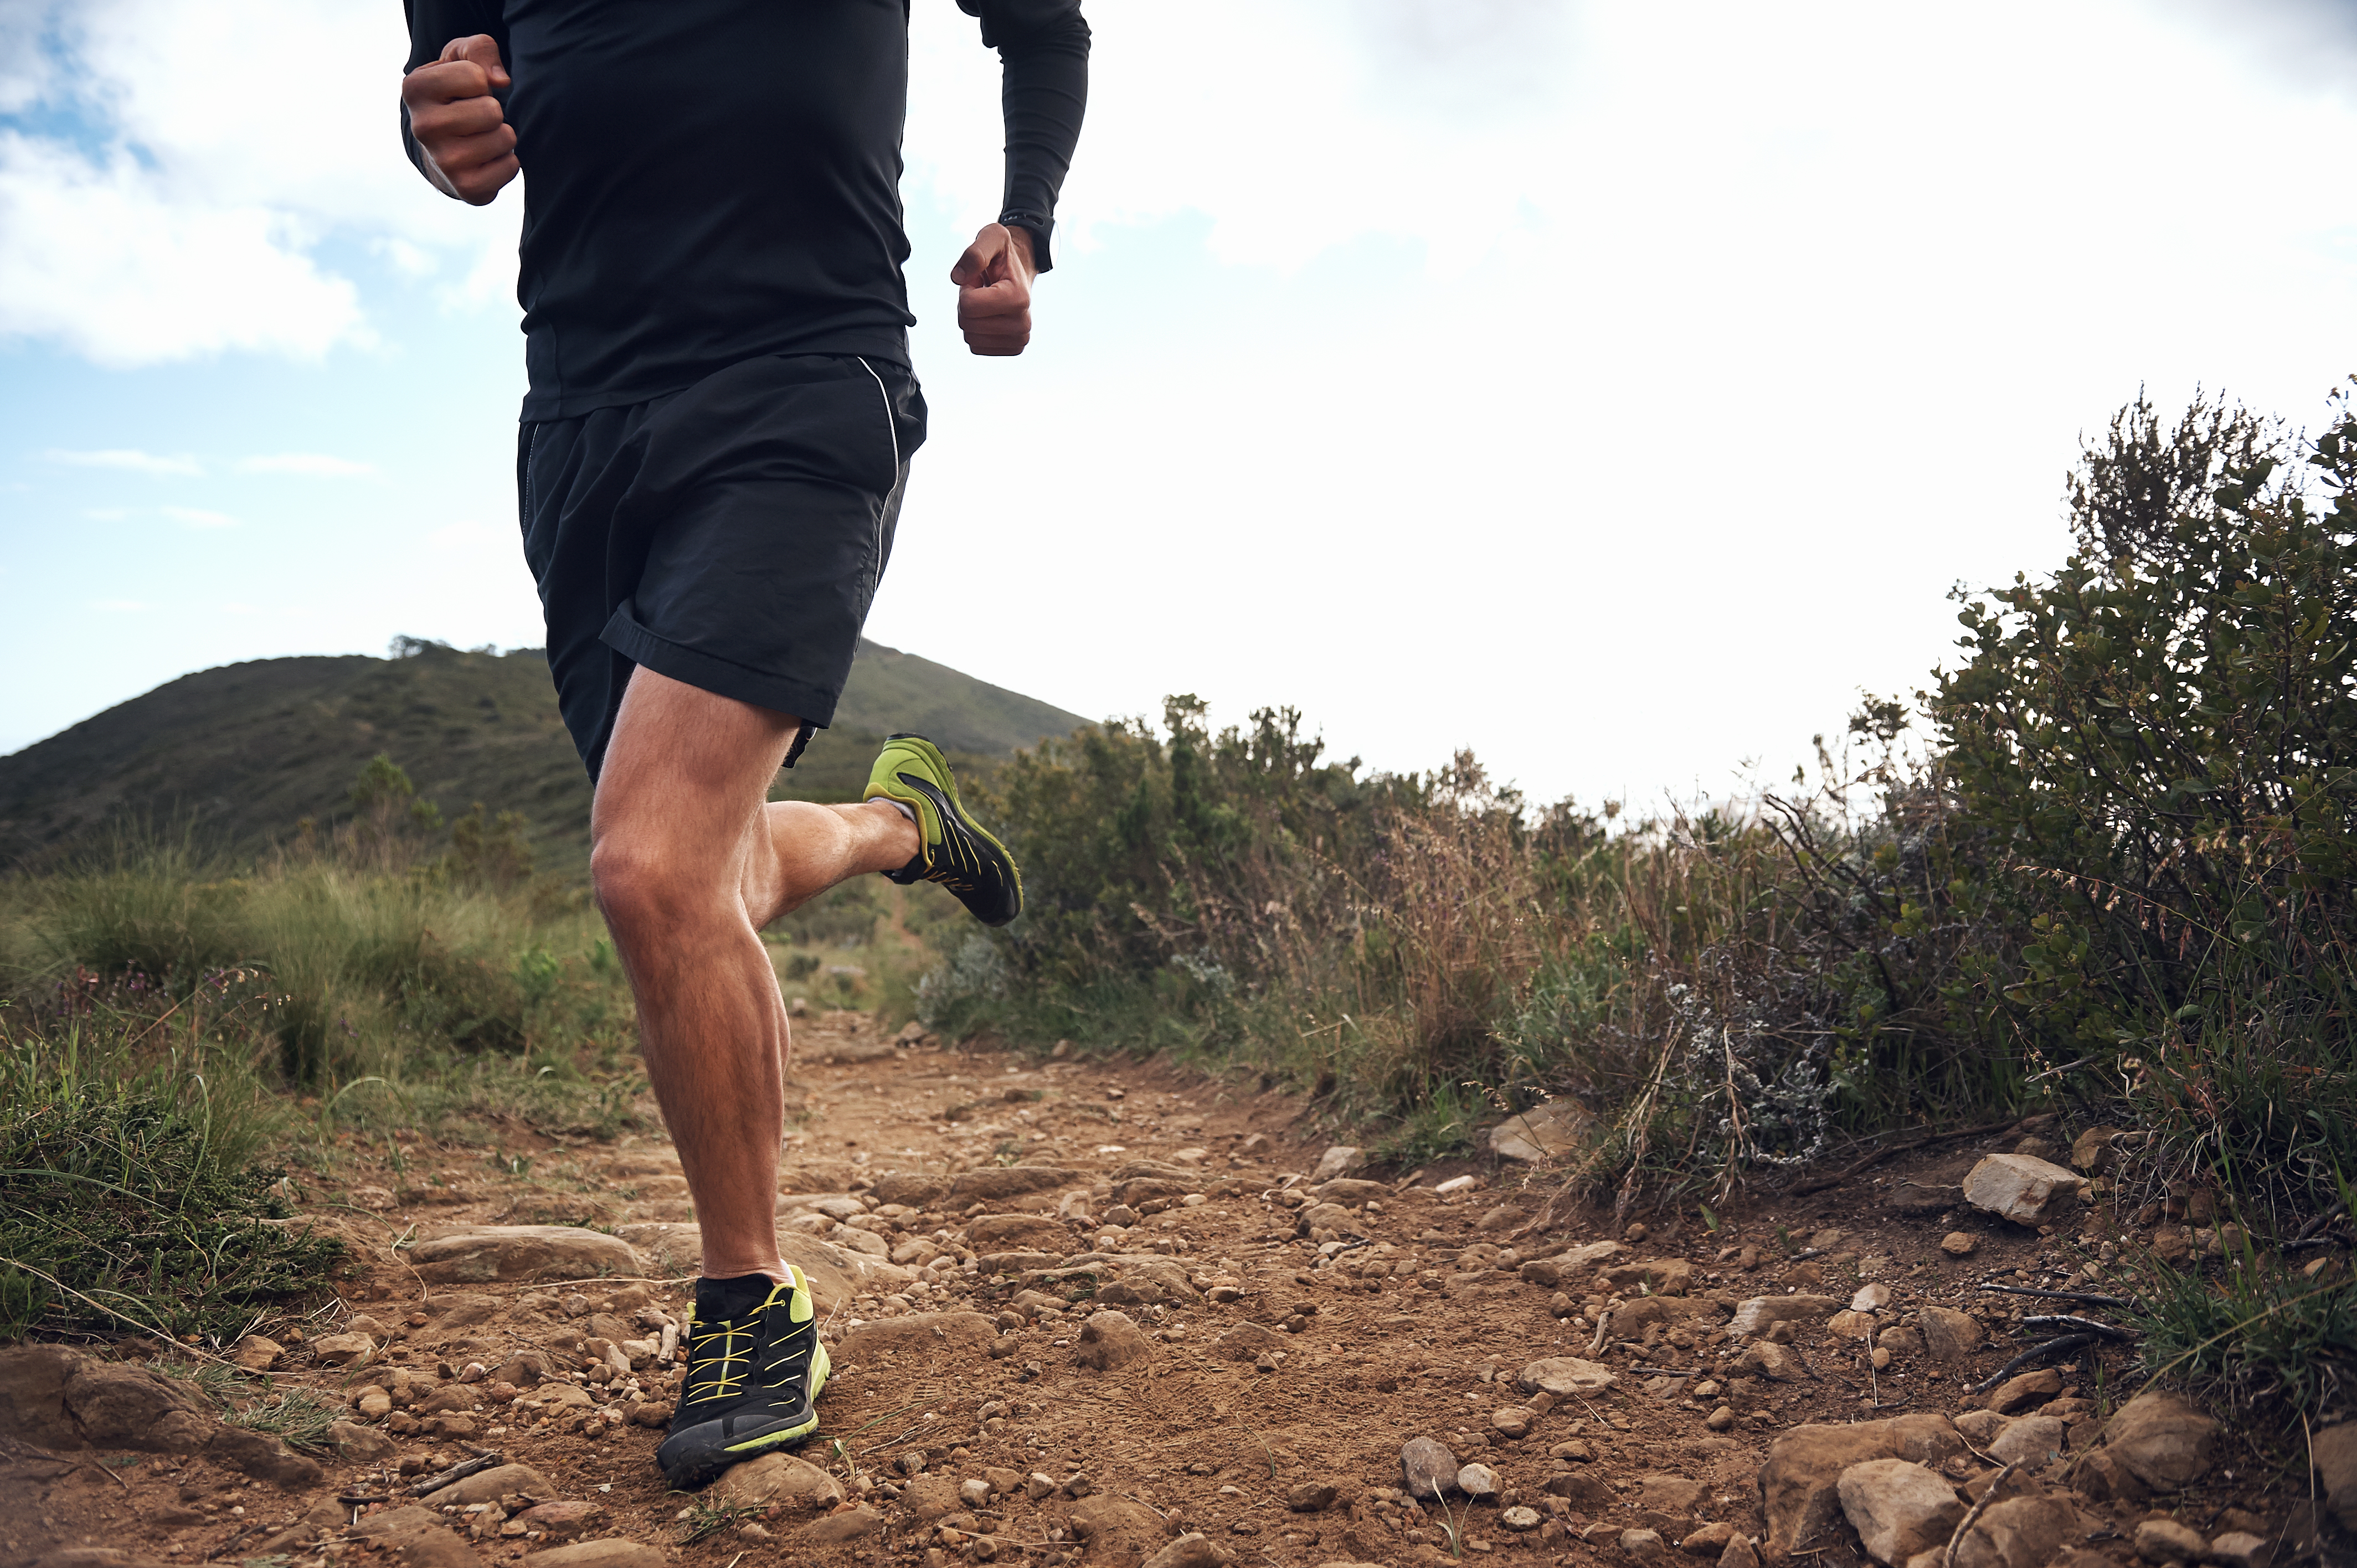 Getting Started as a Trail Runner